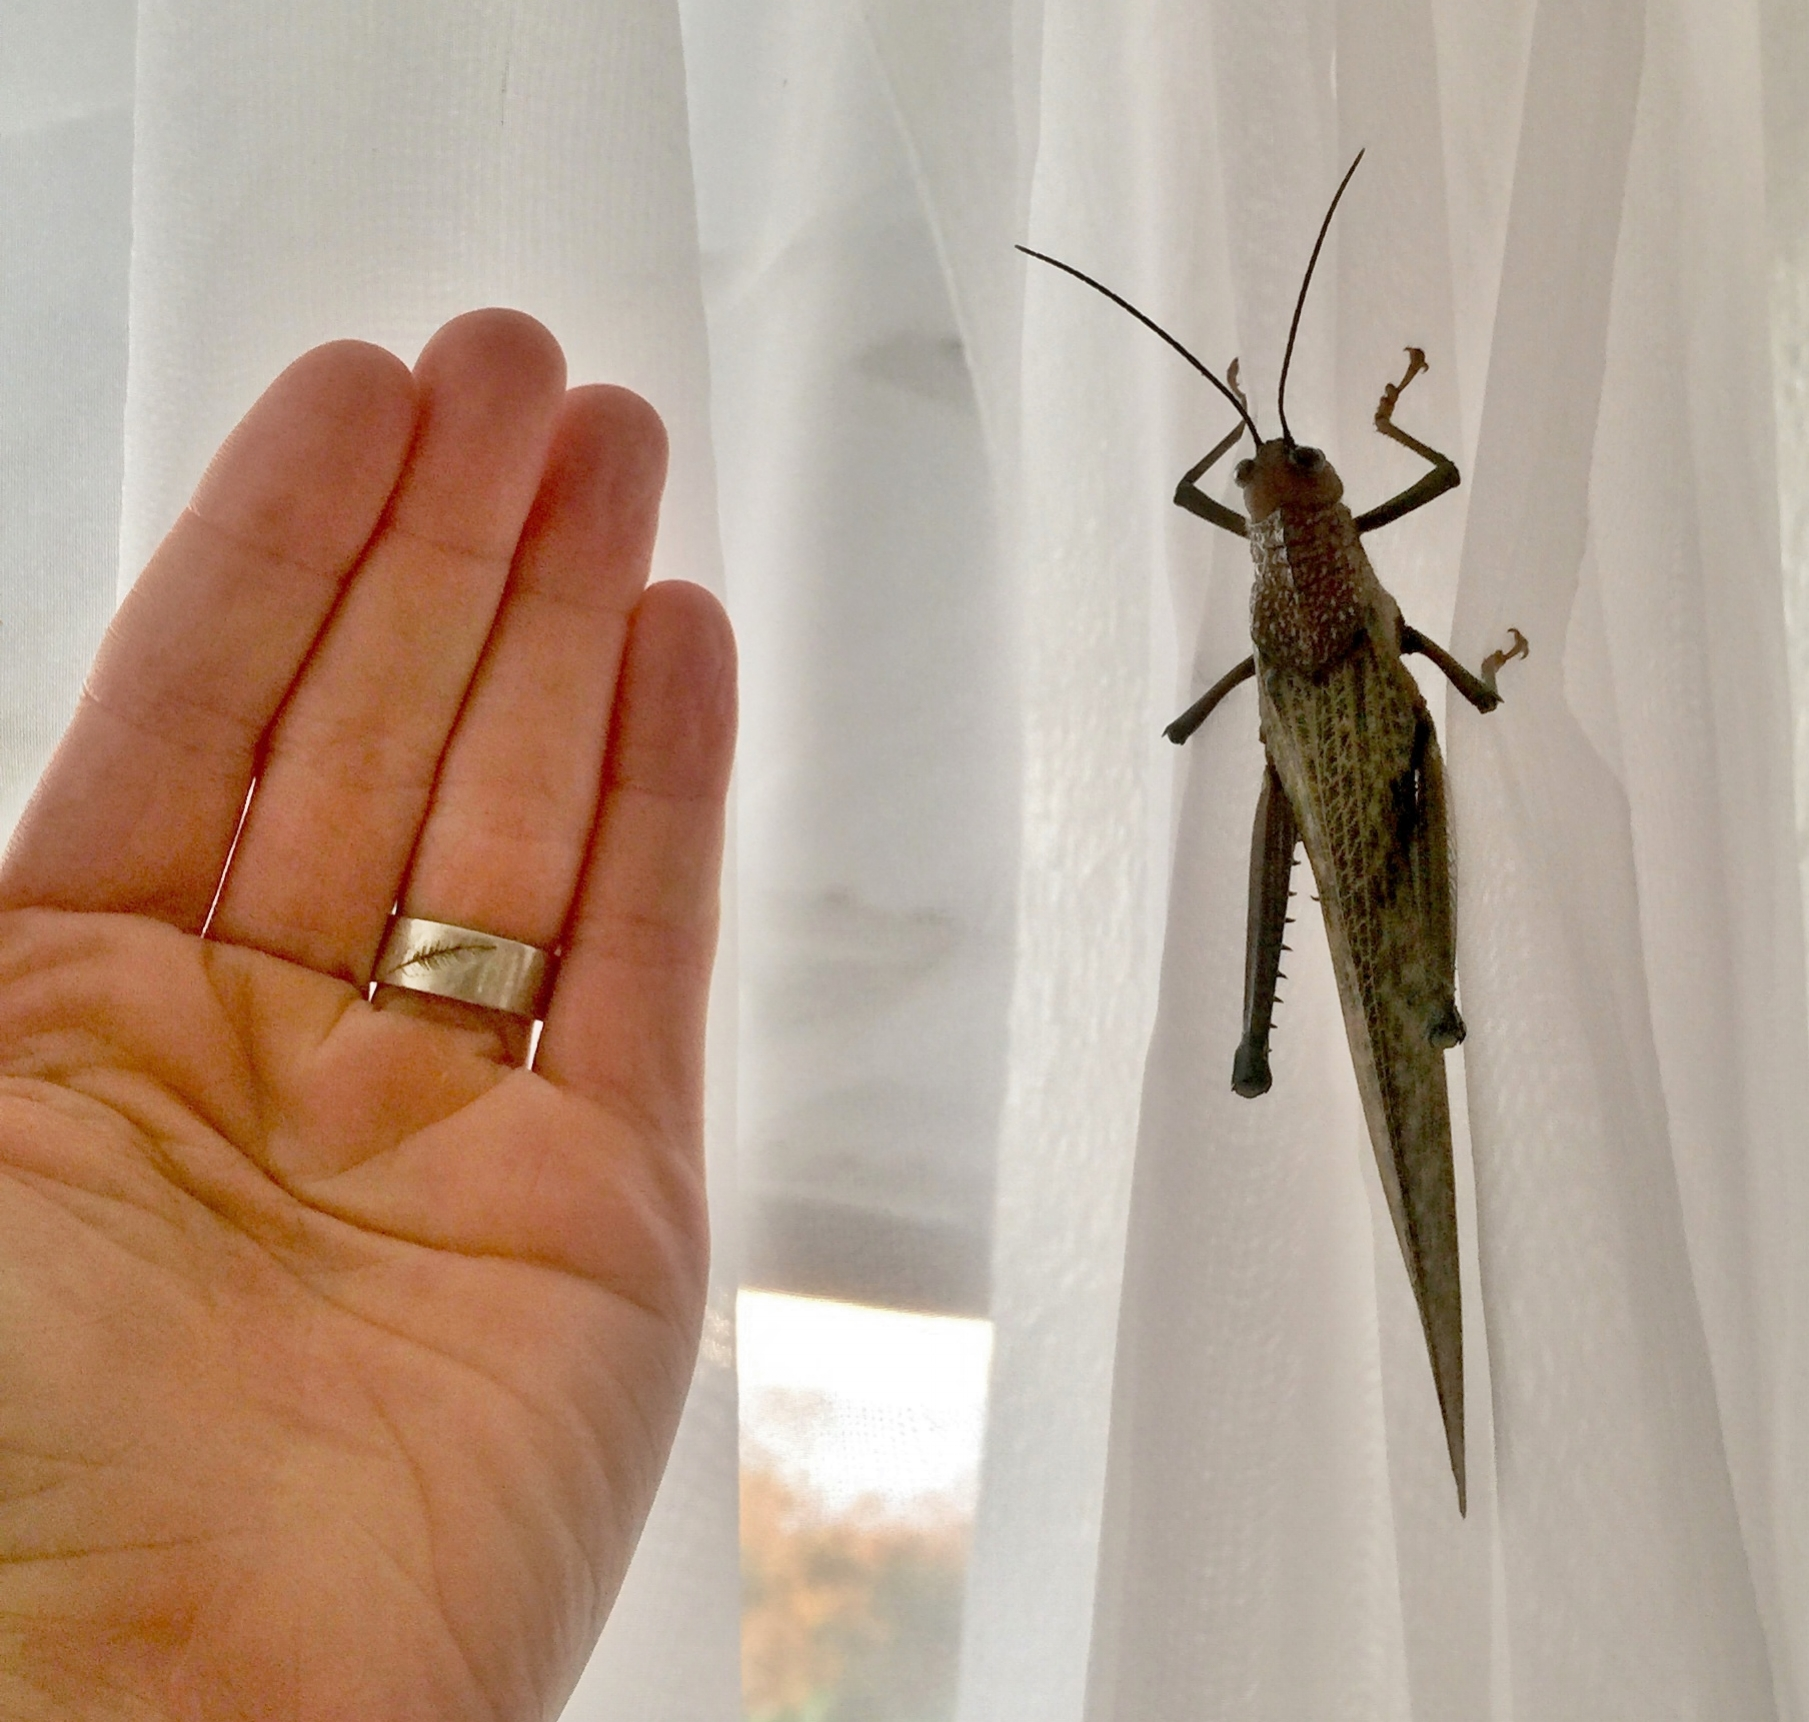 So the bugs here are big.